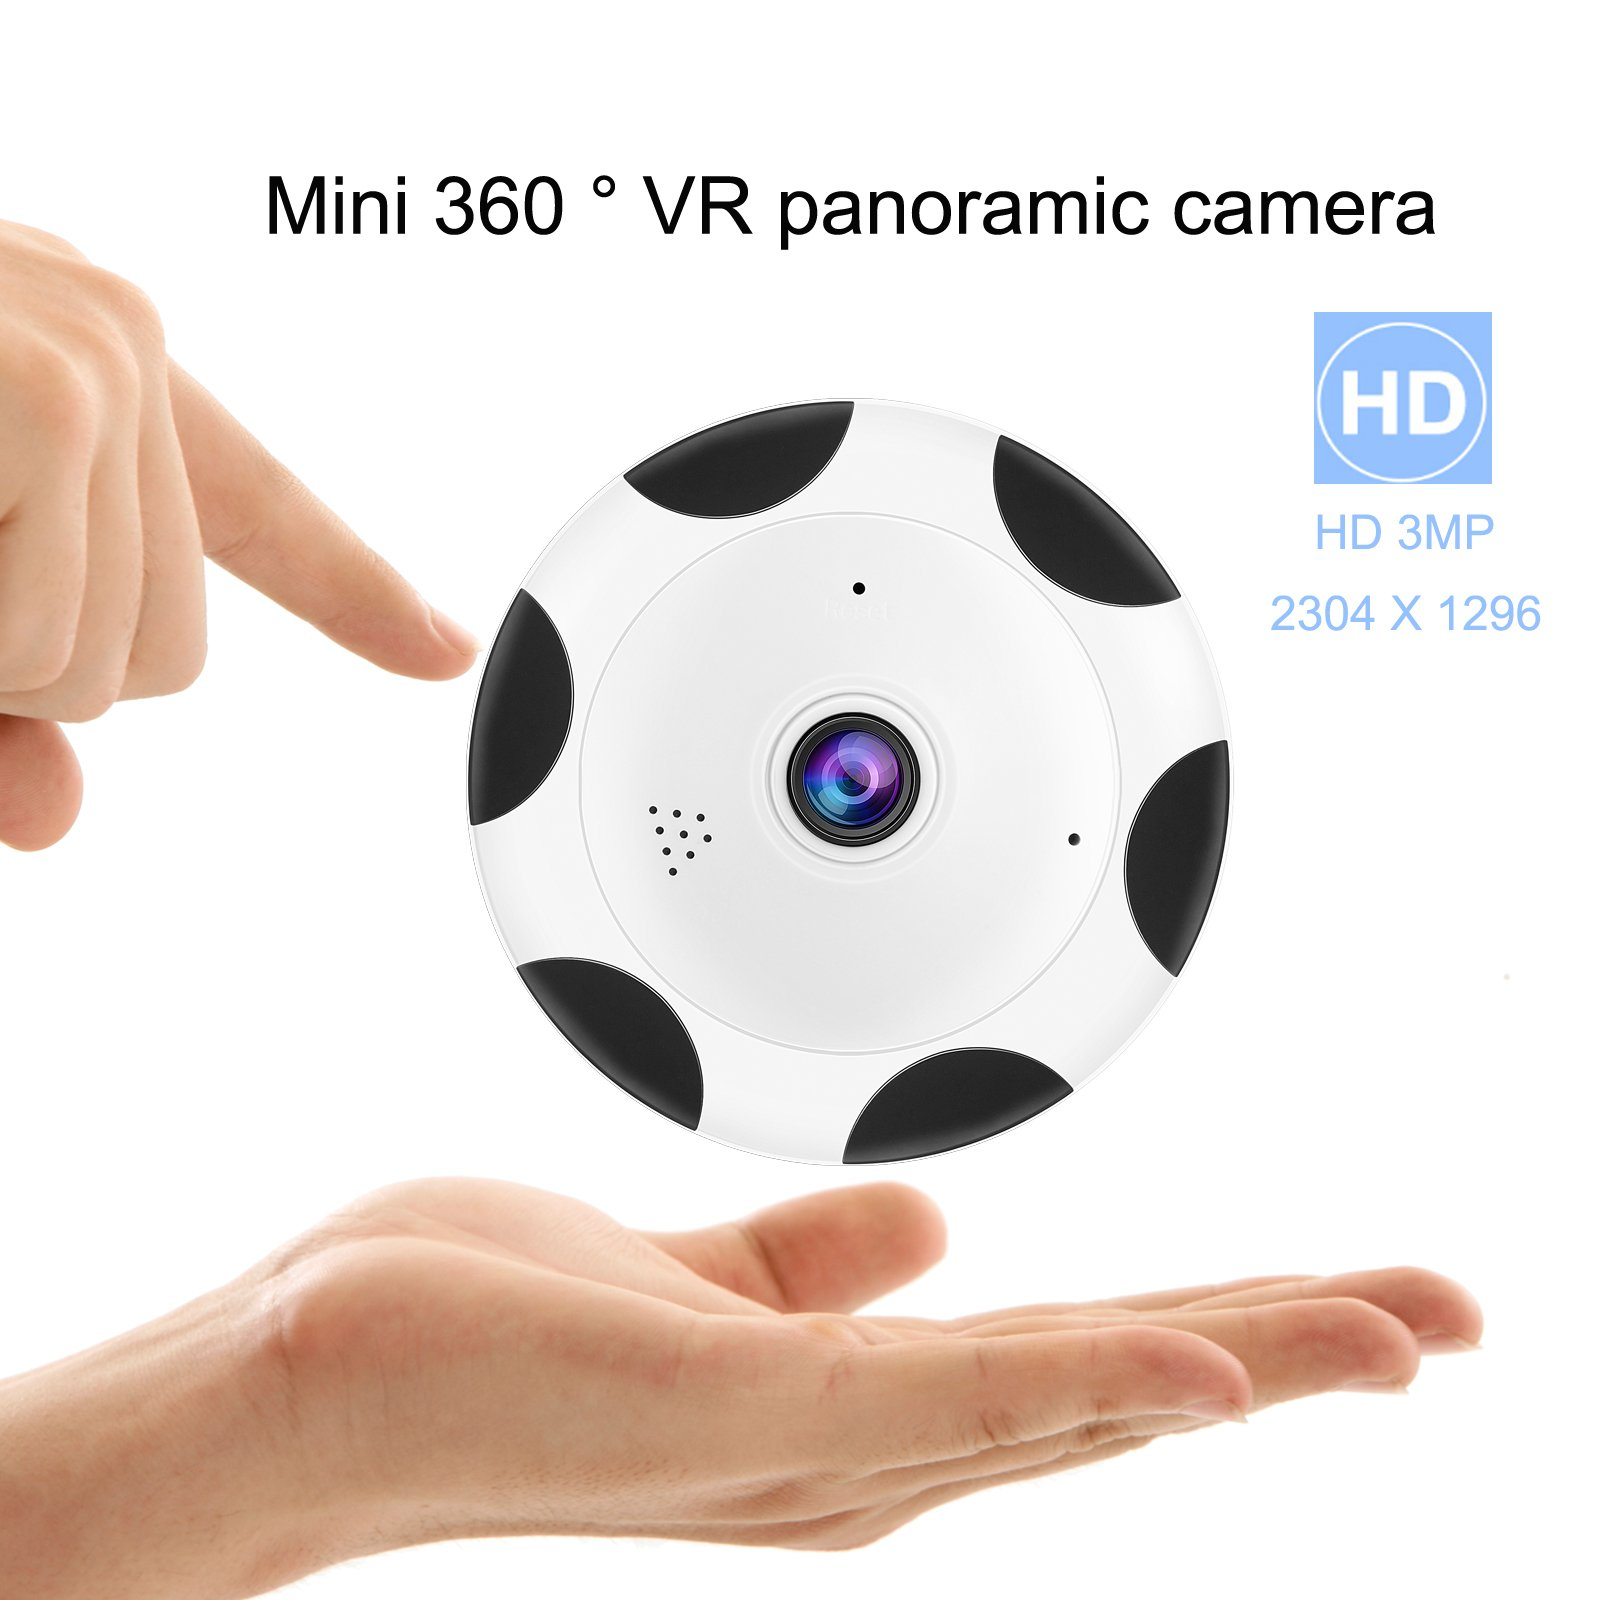 360 3MP WiFi Home Security Mini IP Camera, Baby/Elder/ Pet/Nanny Monitor, HD 2304x1296P Wireless Indoor Security Surveillance CCTV Camera System with APP for iOS, Android, Night Vision,Two-Way Audio by YD-road